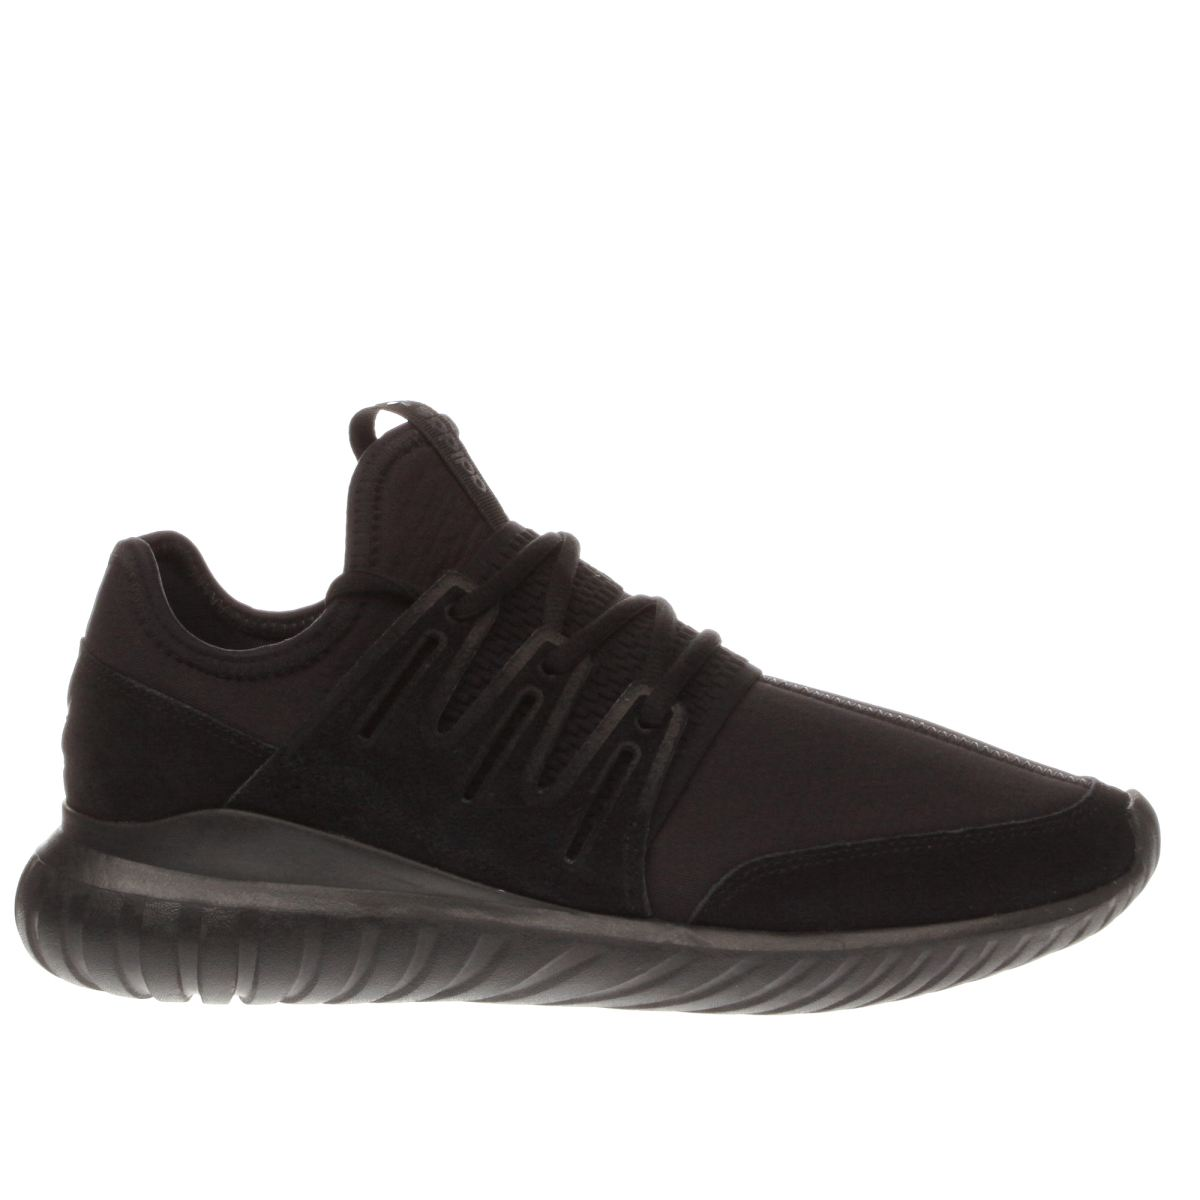 Adidas Originals TUBULAR DEFIANT High top trainers gray / core